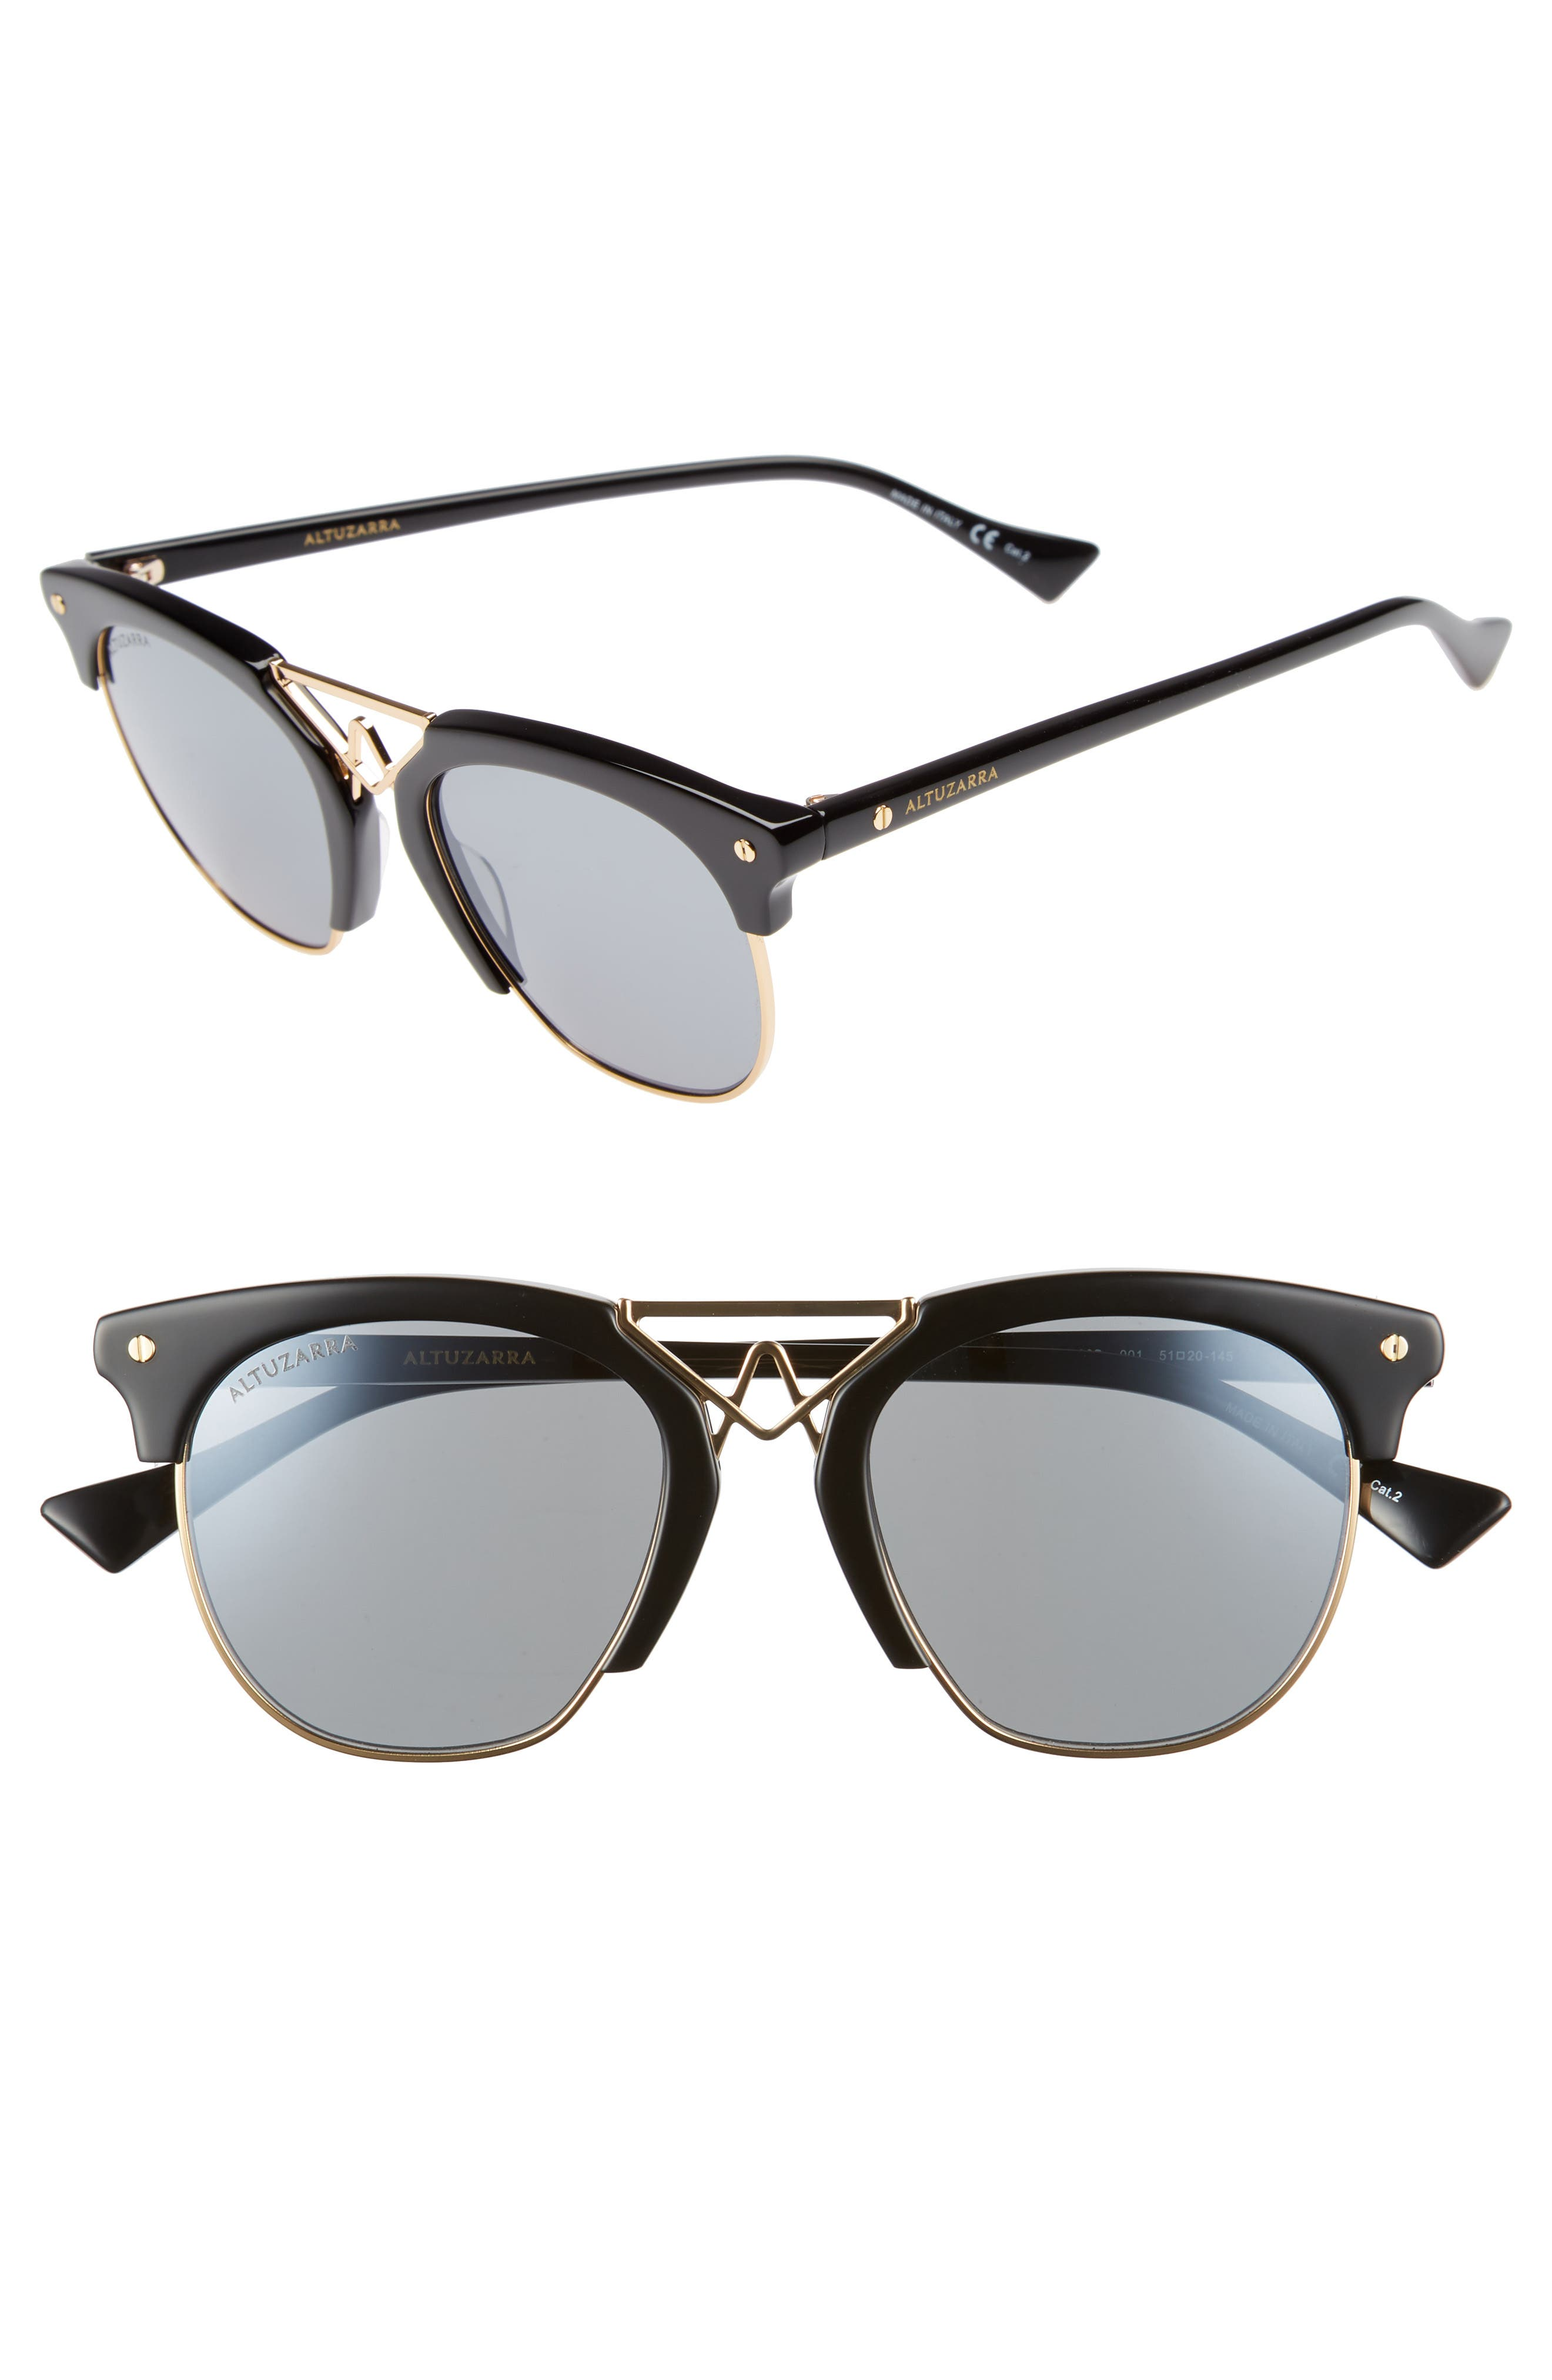 51mm Round Sunglasses,                             Main thumbnail 1, color,                             BLACK/ GOLD